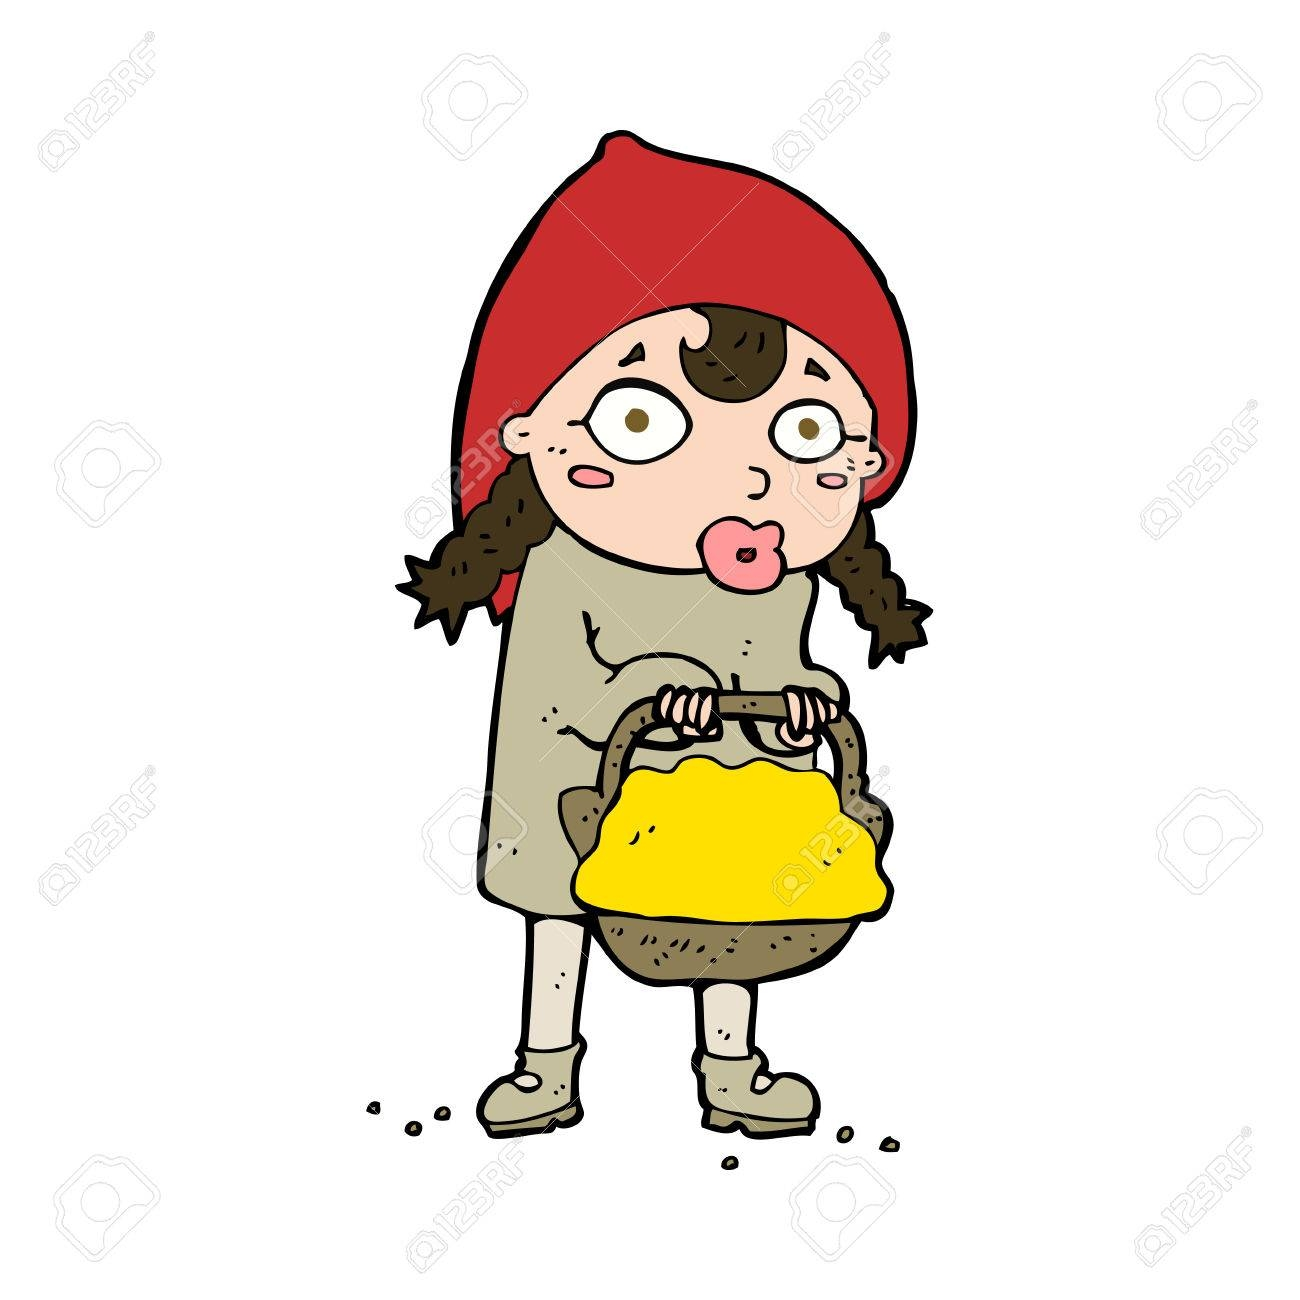 1300x1300 Fresh Red Riding Hood Cartoon Images Gallery Free Cartoon Images